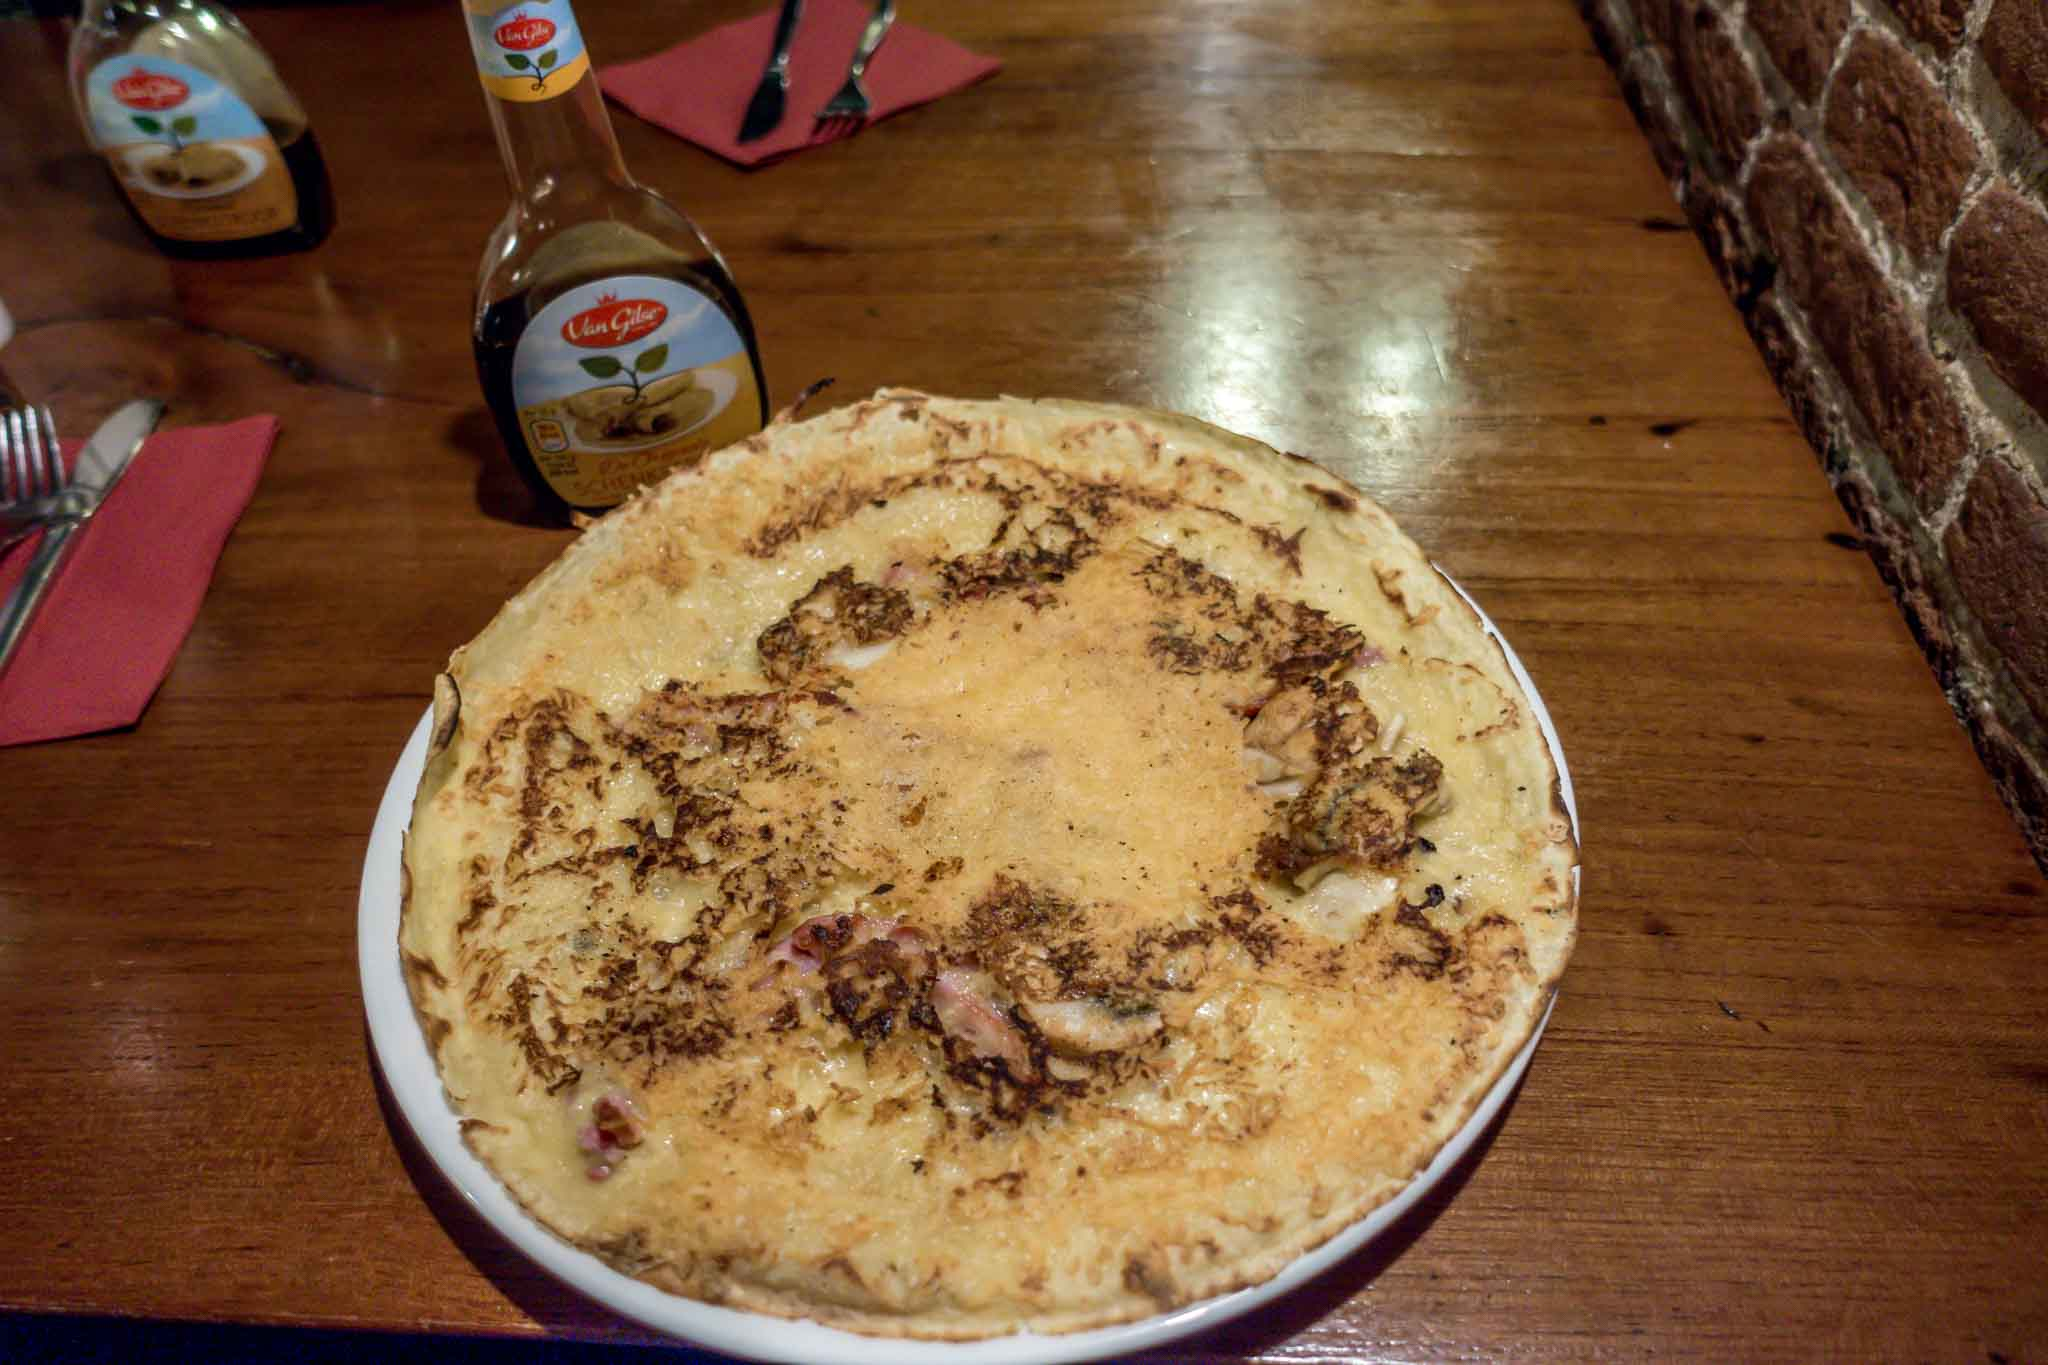 Pancakes for dinner at Amsterdam's The Pancake Bakery are one of the typical Dutch dishes